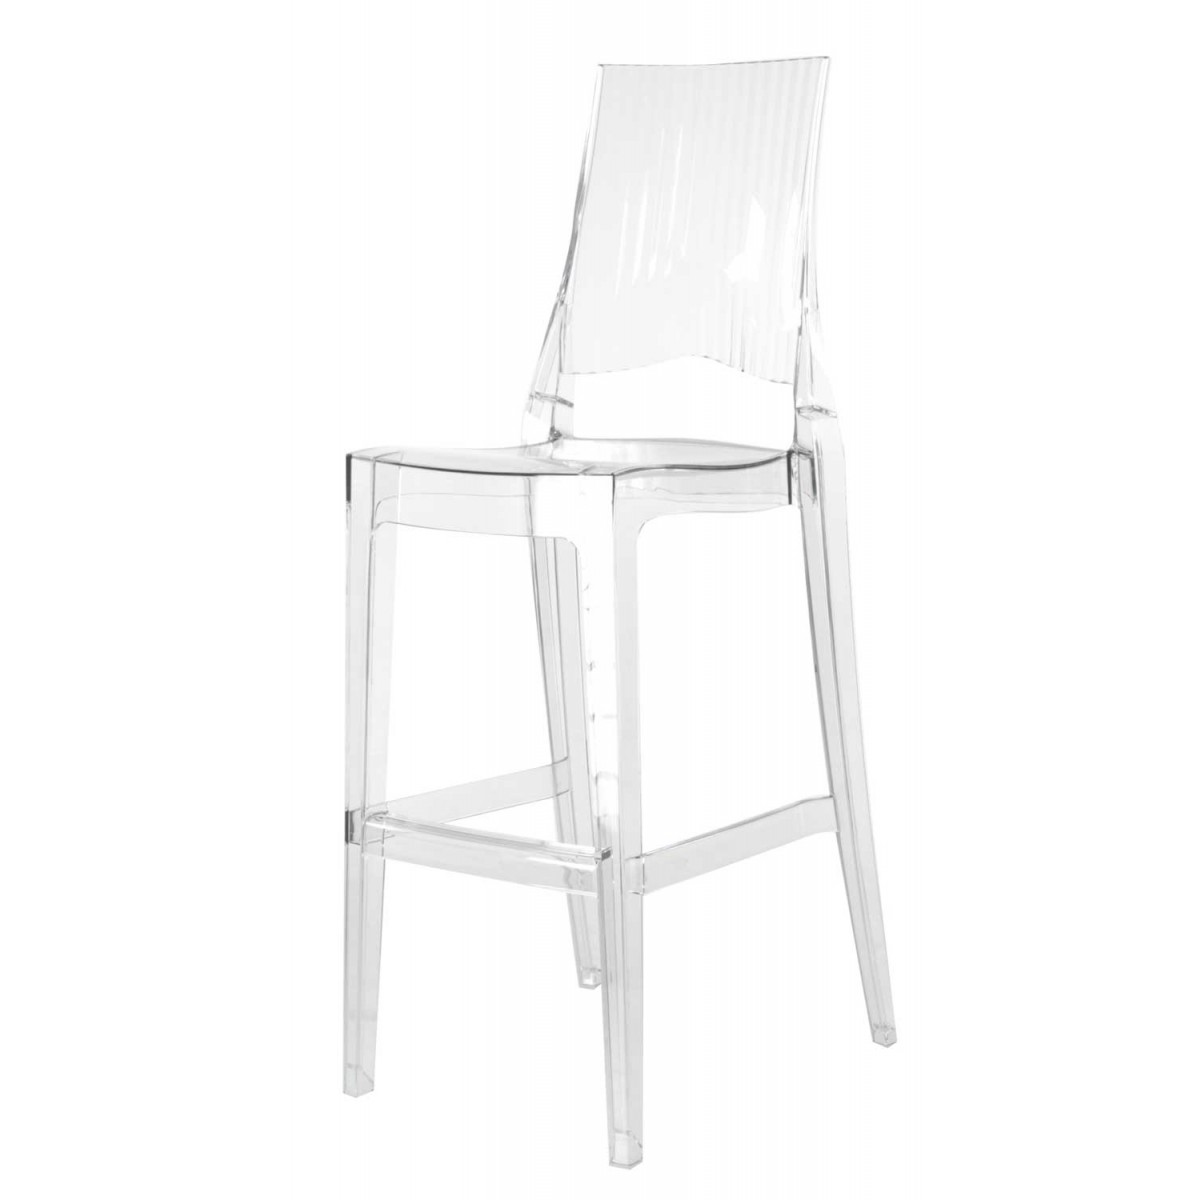 2 x tabouret de bar transparent polycarbonate glenda mooviin - Tabourets de bar transparents ...